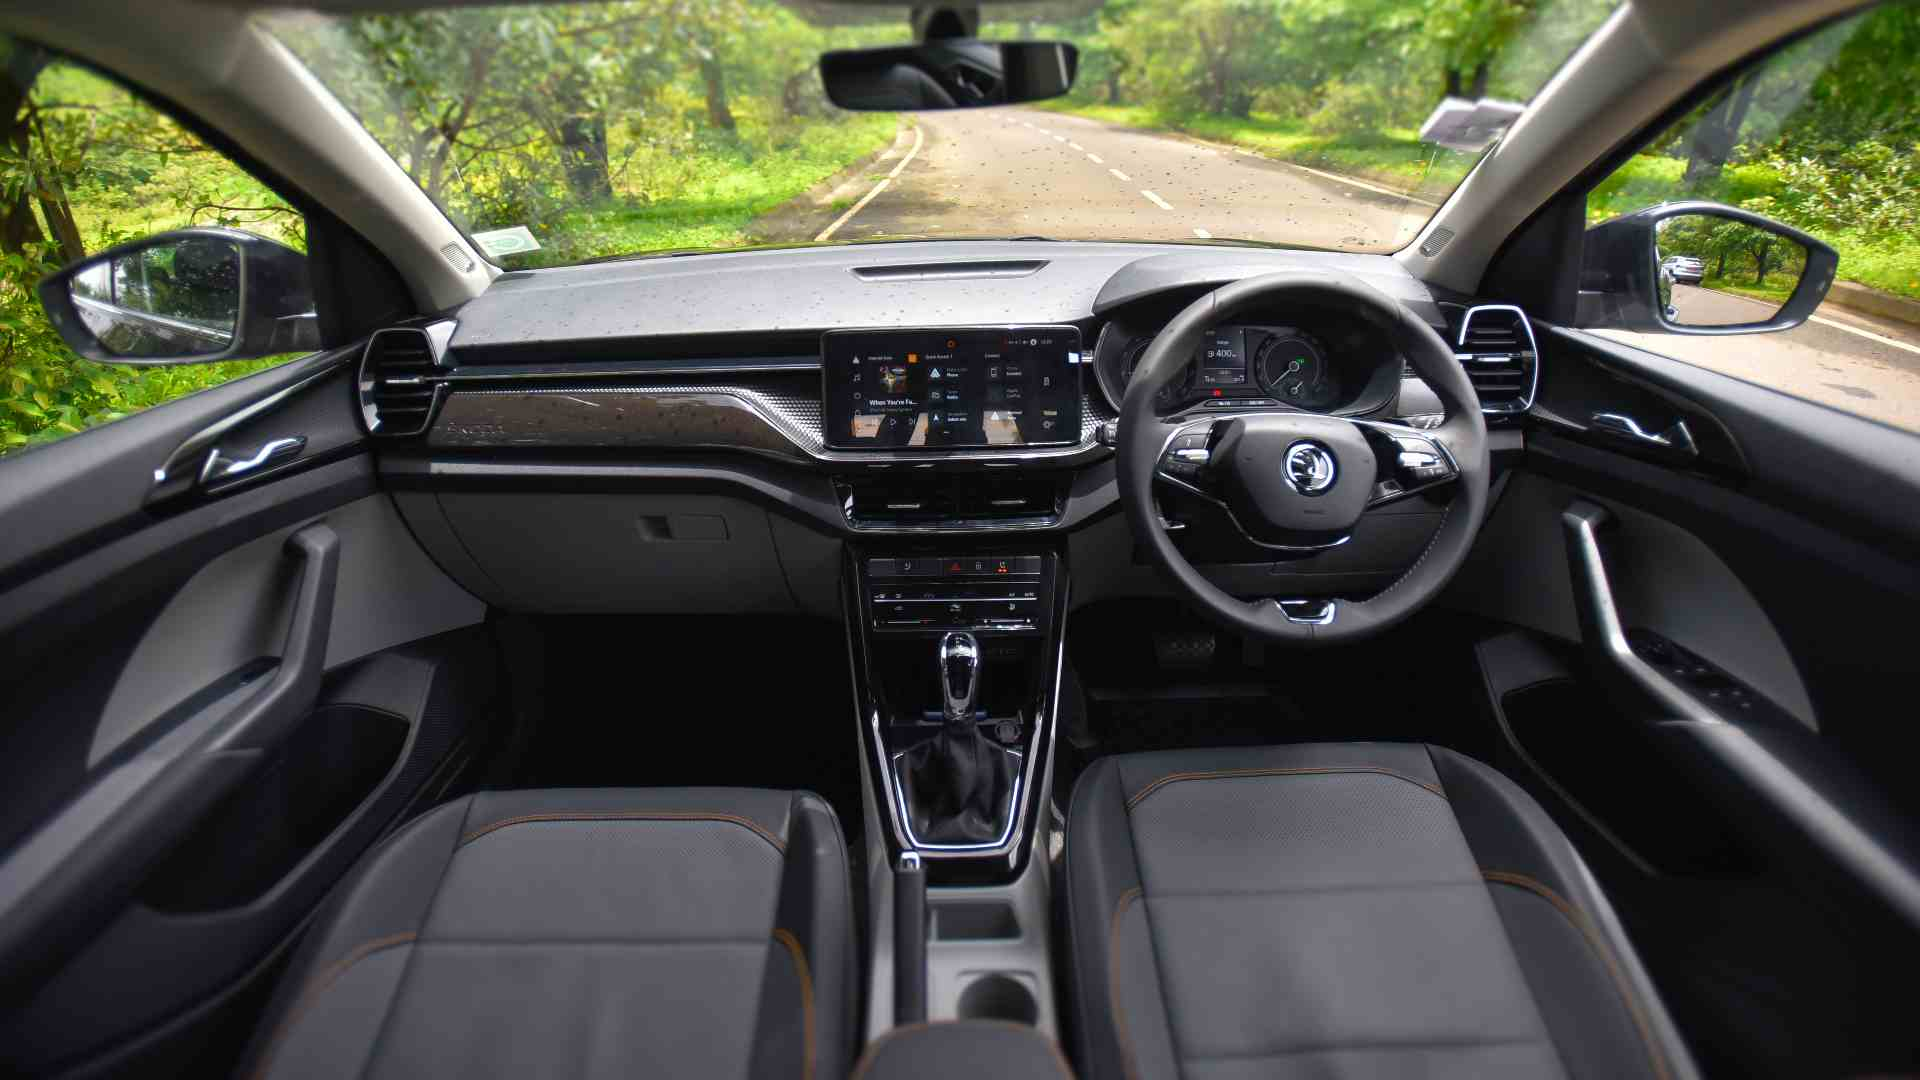 Plastic quality is unremarkable, but on the whole, the interior of the Skoda Kushaq is a great place to be. Image: Overdrive/Anis Shaikh